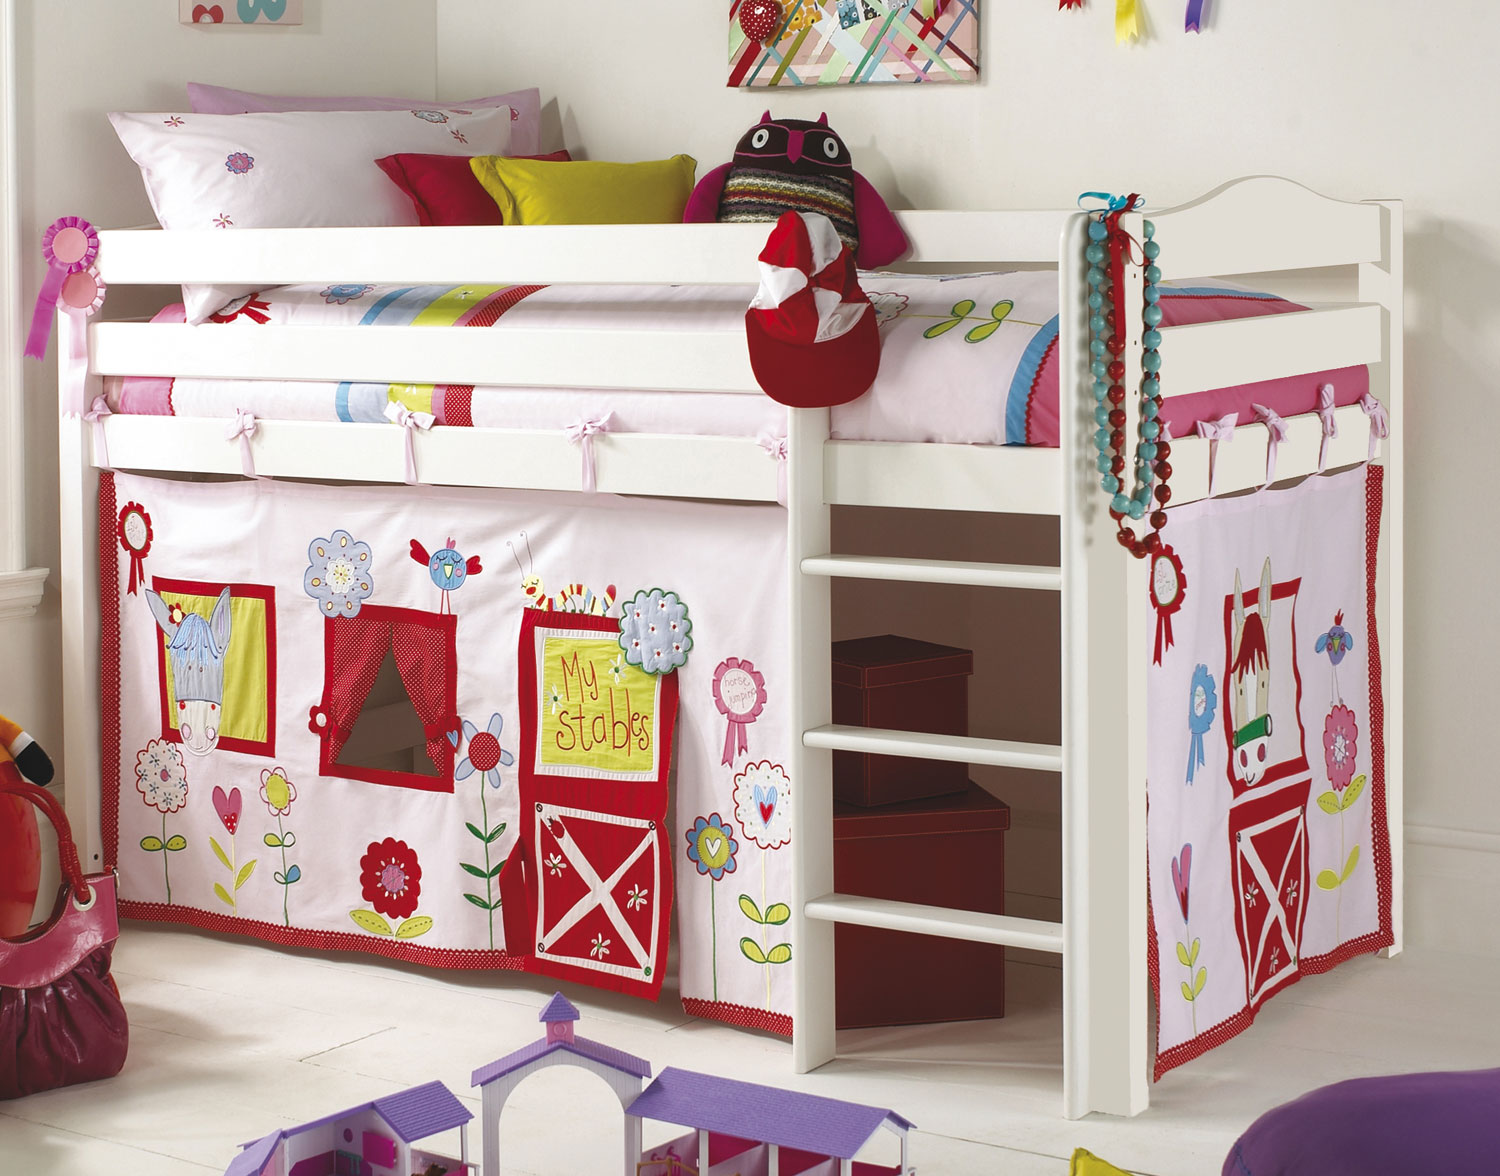 Cute Rooms cute room decor ideas. cute room decor ideas rooms girls design